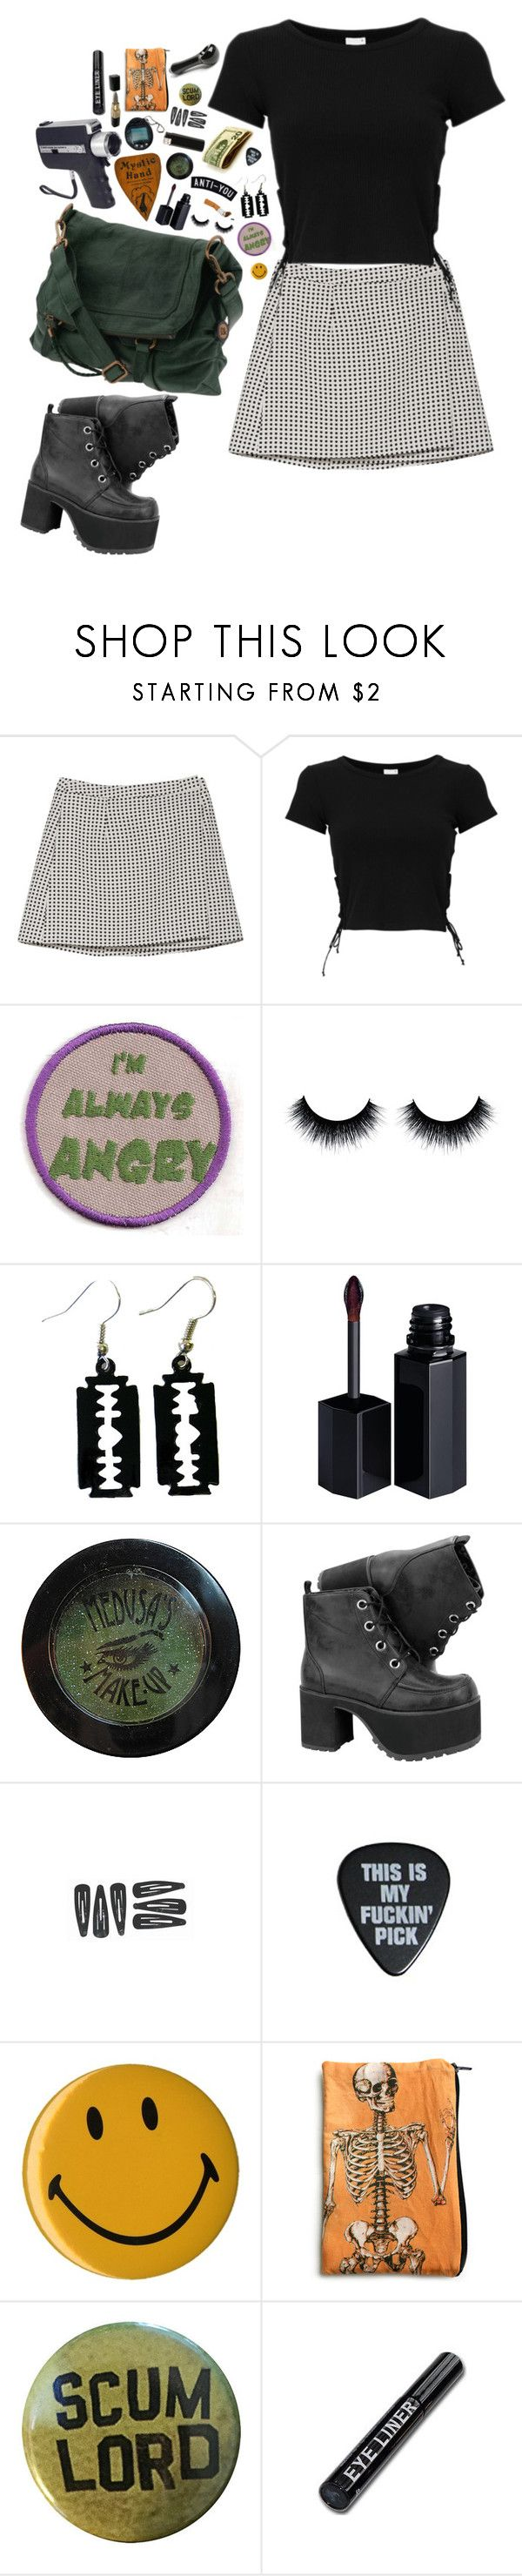 """""""Untitled #220"""" by gabbyortega ❤ liked on Polyvore featuring Joie, The Sak, Serge Lutens and Sourpuss"""